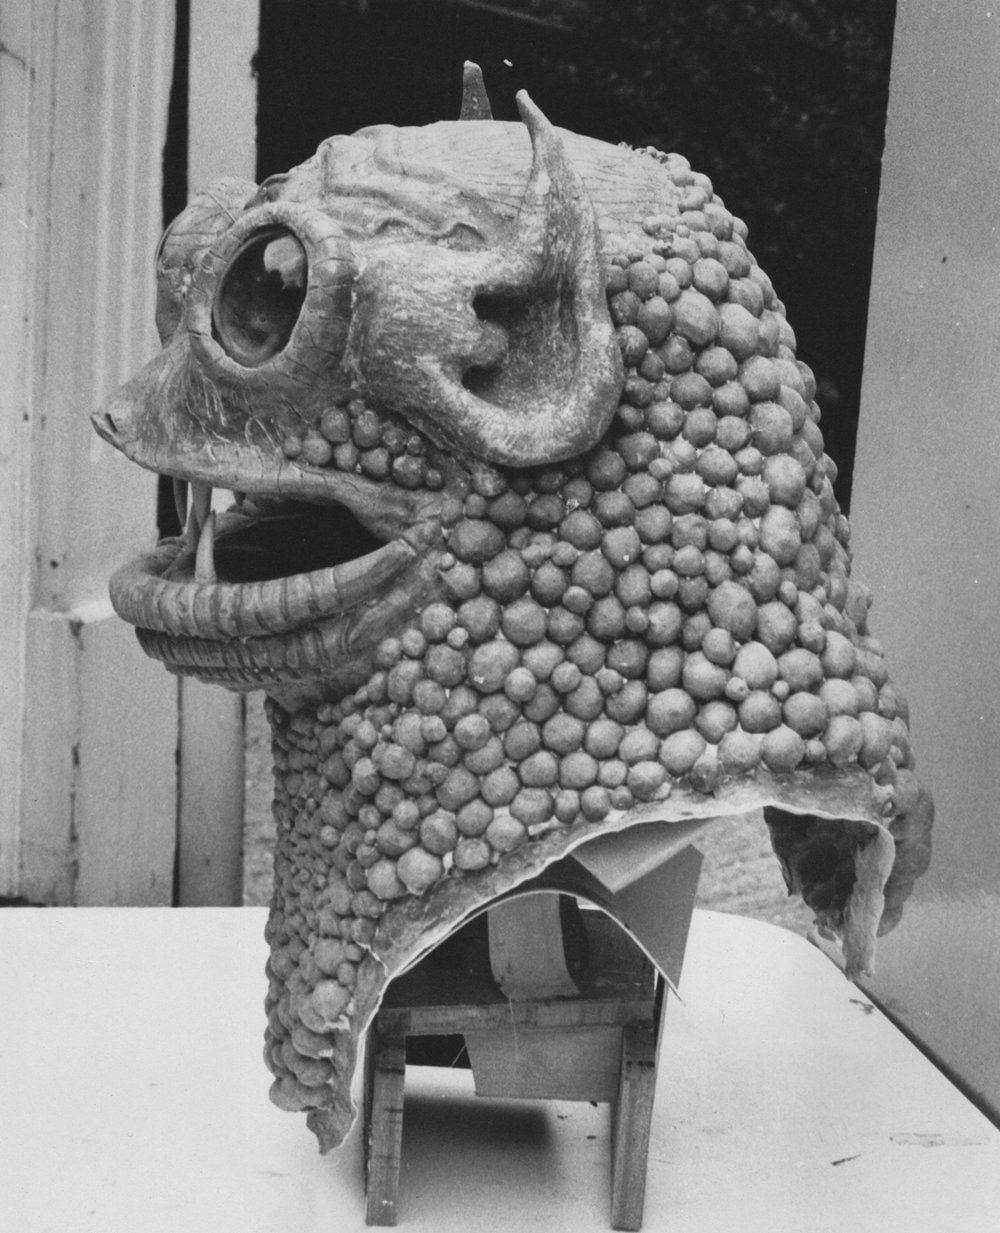 Monsters - Plaster, clay and Latex rubber are very versatile materials for the making of monsters.